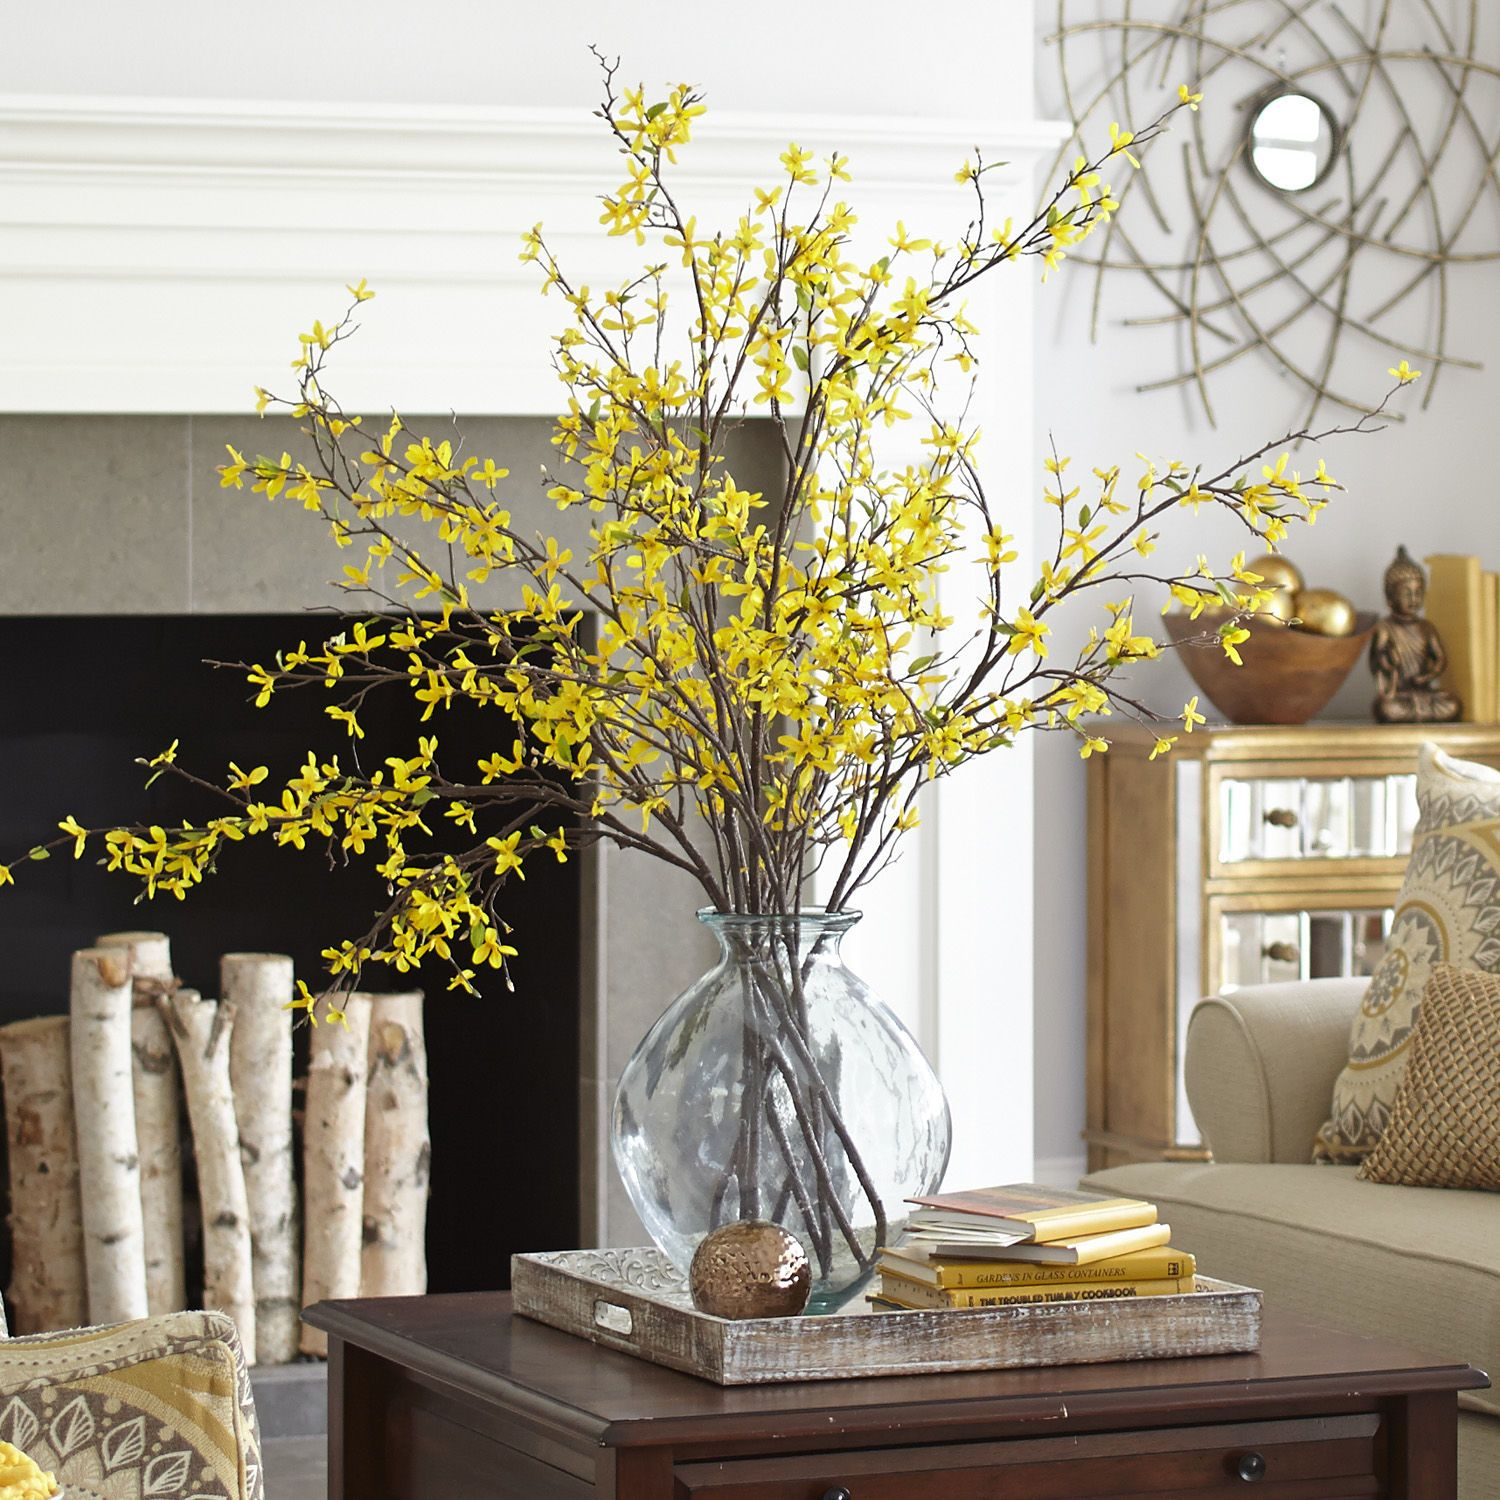 Living Room Table Centerpieces: Yellow Faux Forsythia Branch In 2019